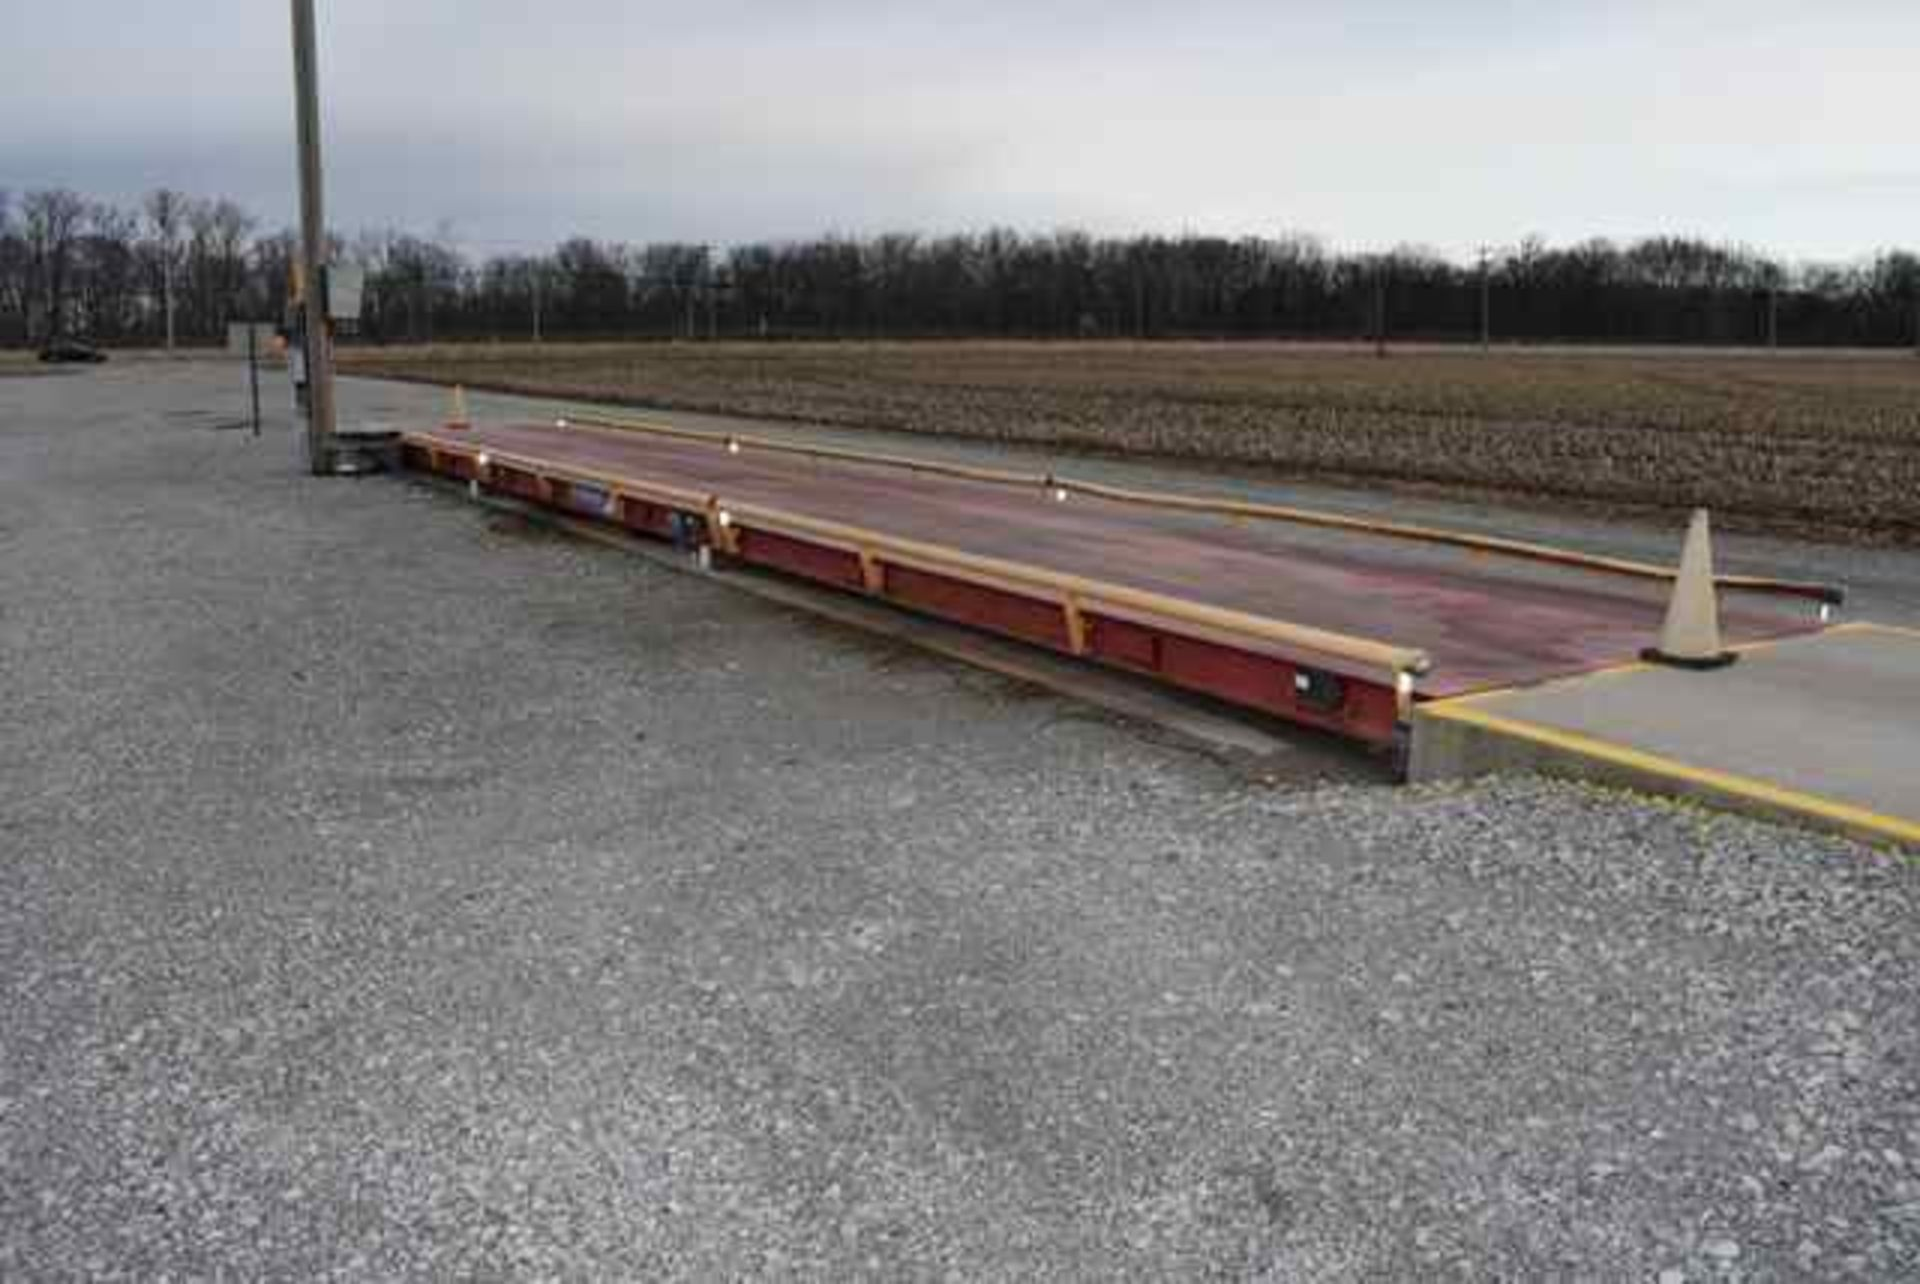 Lot 616 - Fairbanks above ground truck scale, model PLT-6020-HVA09, 70'X10' platform, 120,000# capacity, 4-